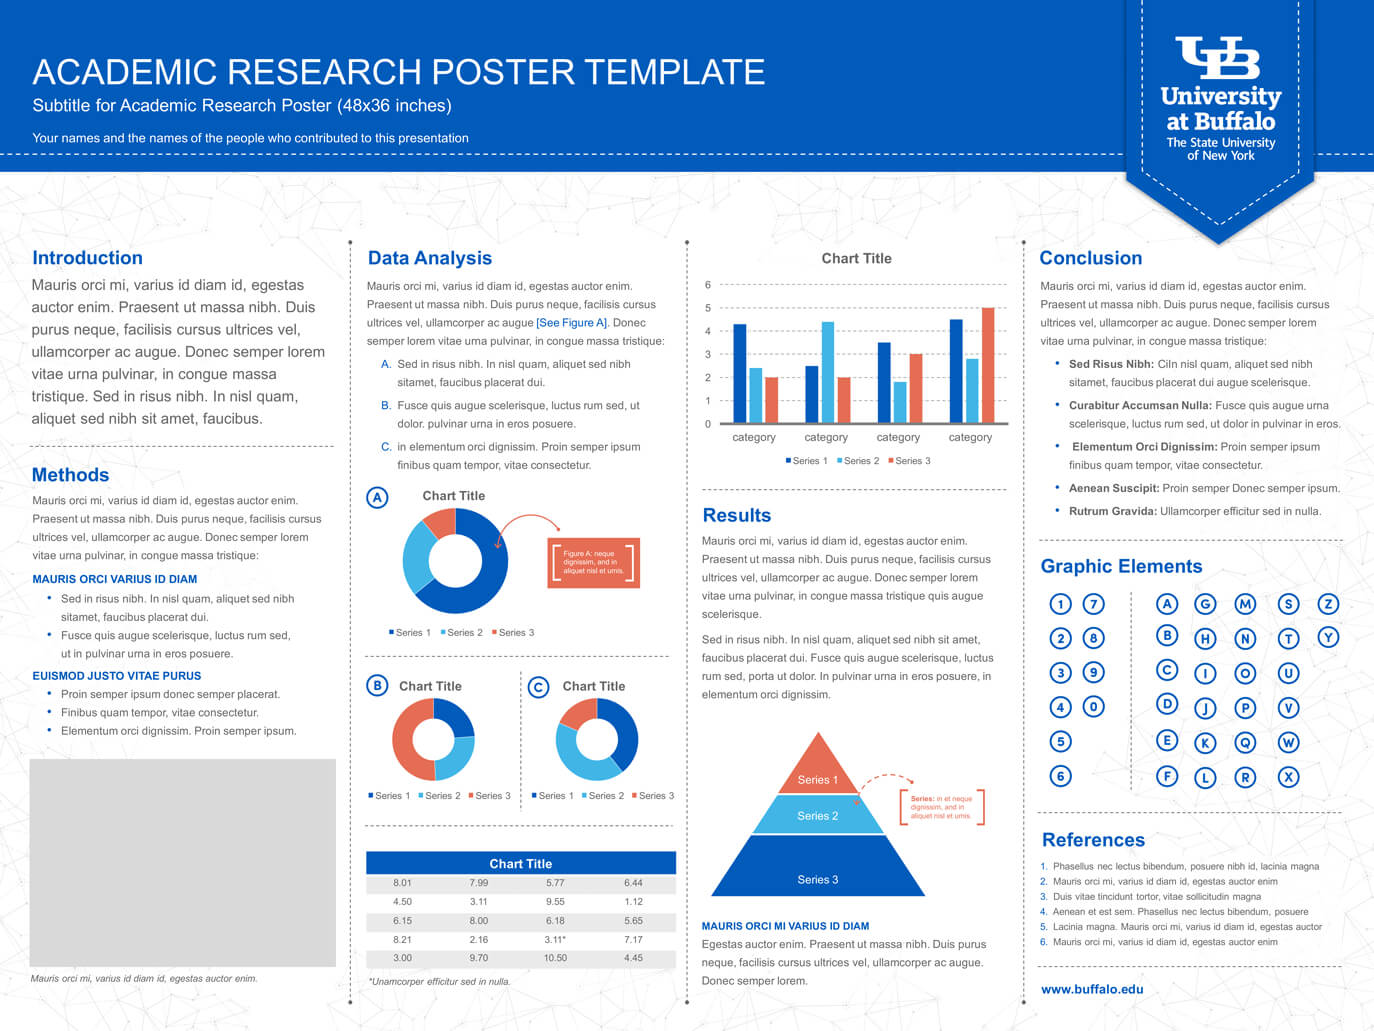 Research Poster Template Powerpoint Borders 24X36 Scientific pertaining to Powerpoint Academic Poster Template